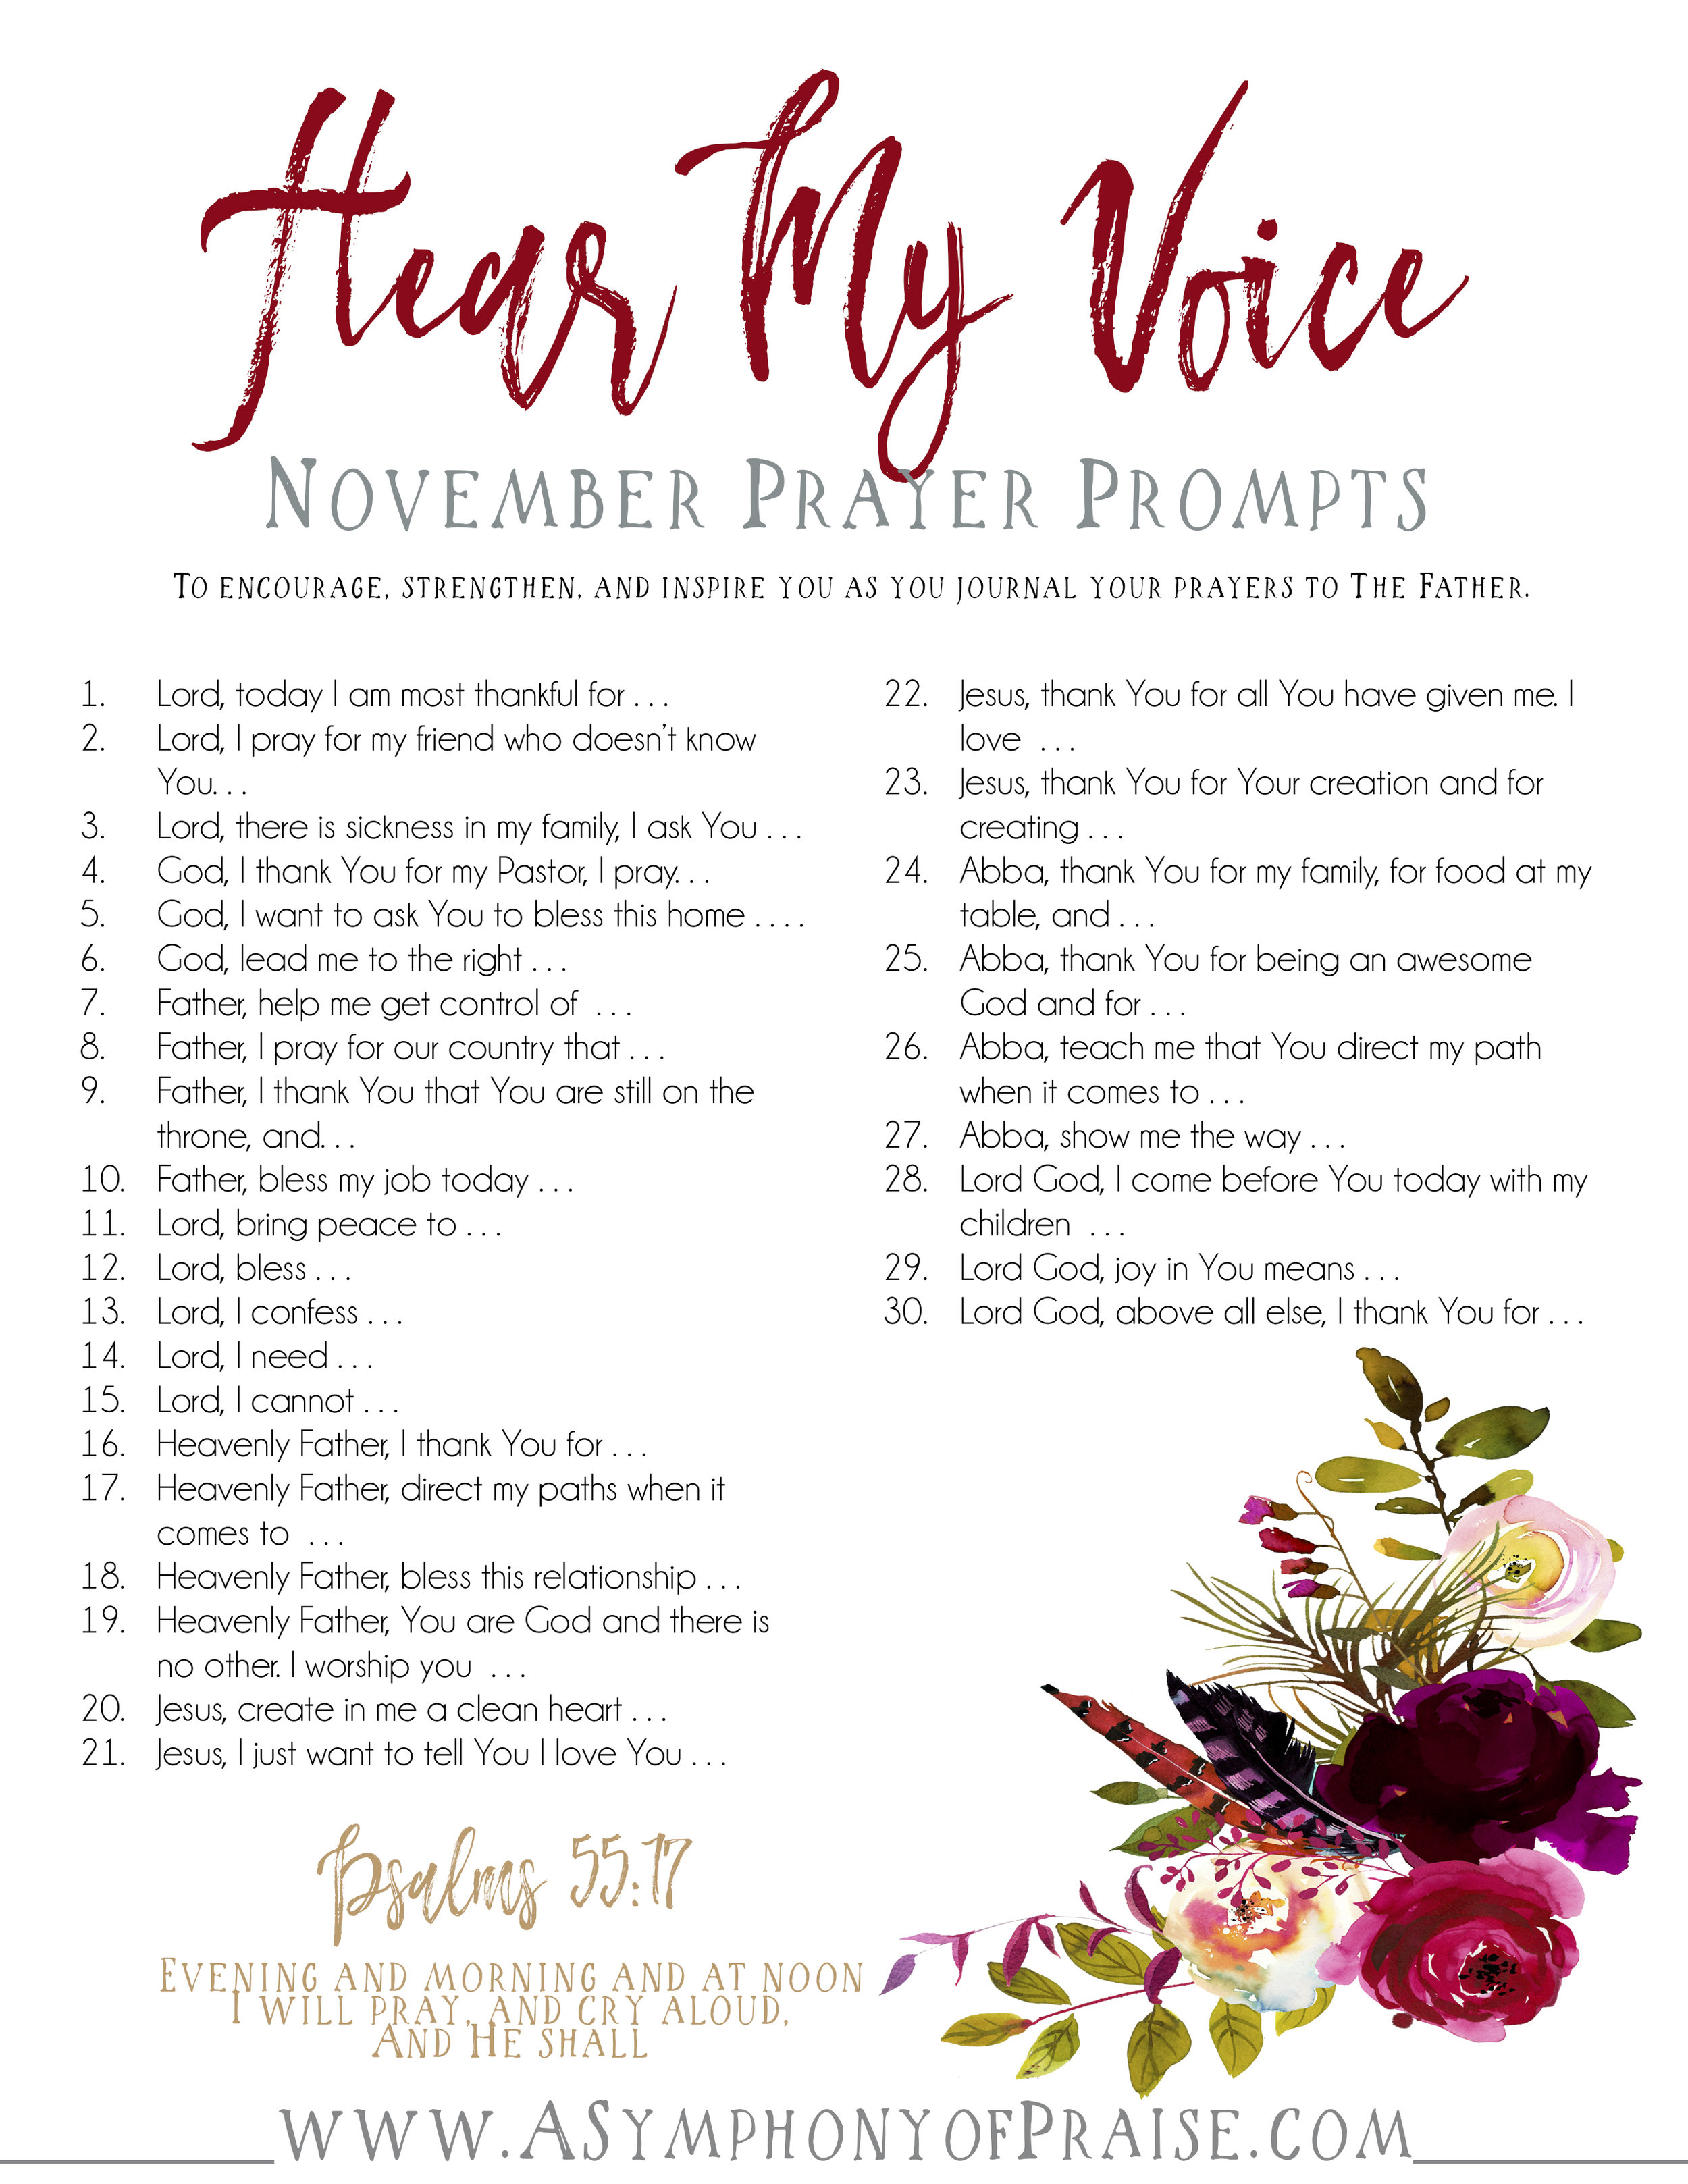 CLICK HERE  to download your NOVEMBER PRAYER PROMPTS